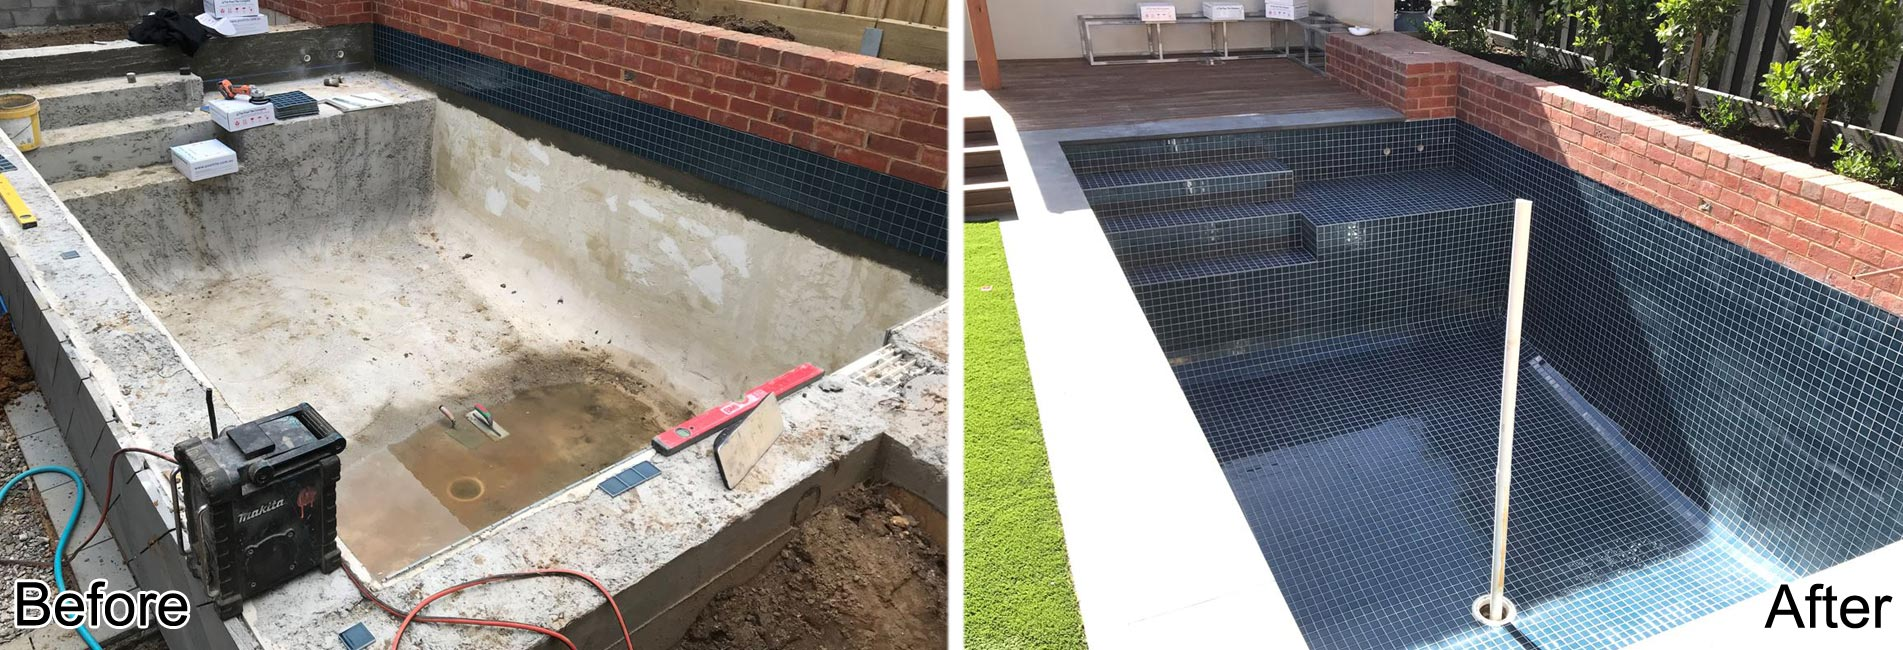 Pool Repairs Hallam, Pool Builders Cranbourne, Fix Pool Filters Berwick, Pool Services Melbourne